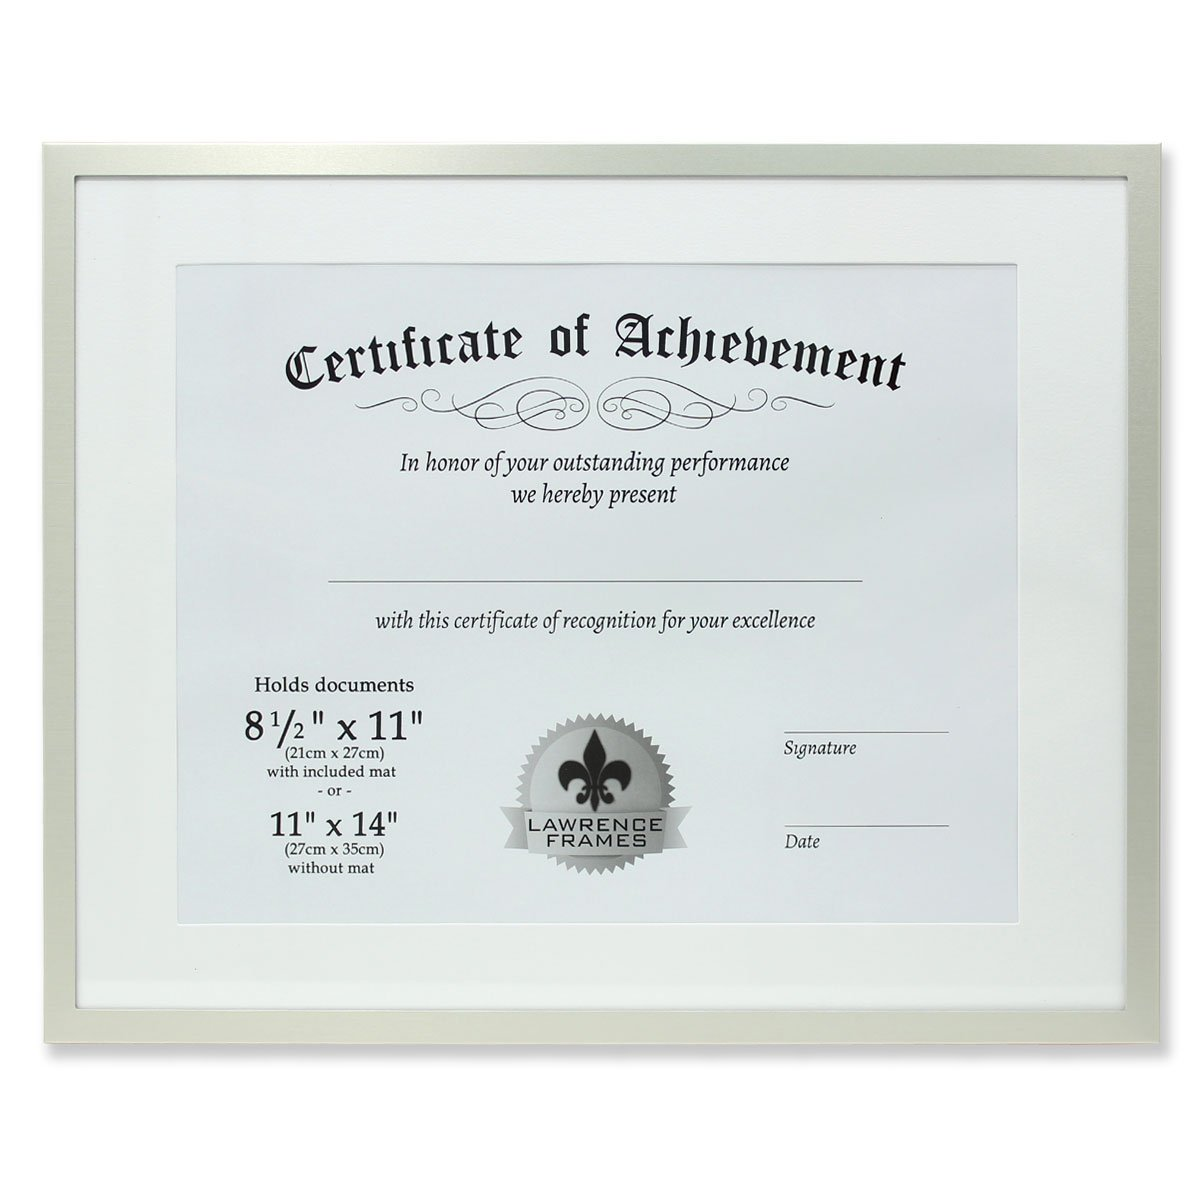 Lawrence Frames Dual Use Aluminum Document Frame, 11 by 14-Inch, Silver